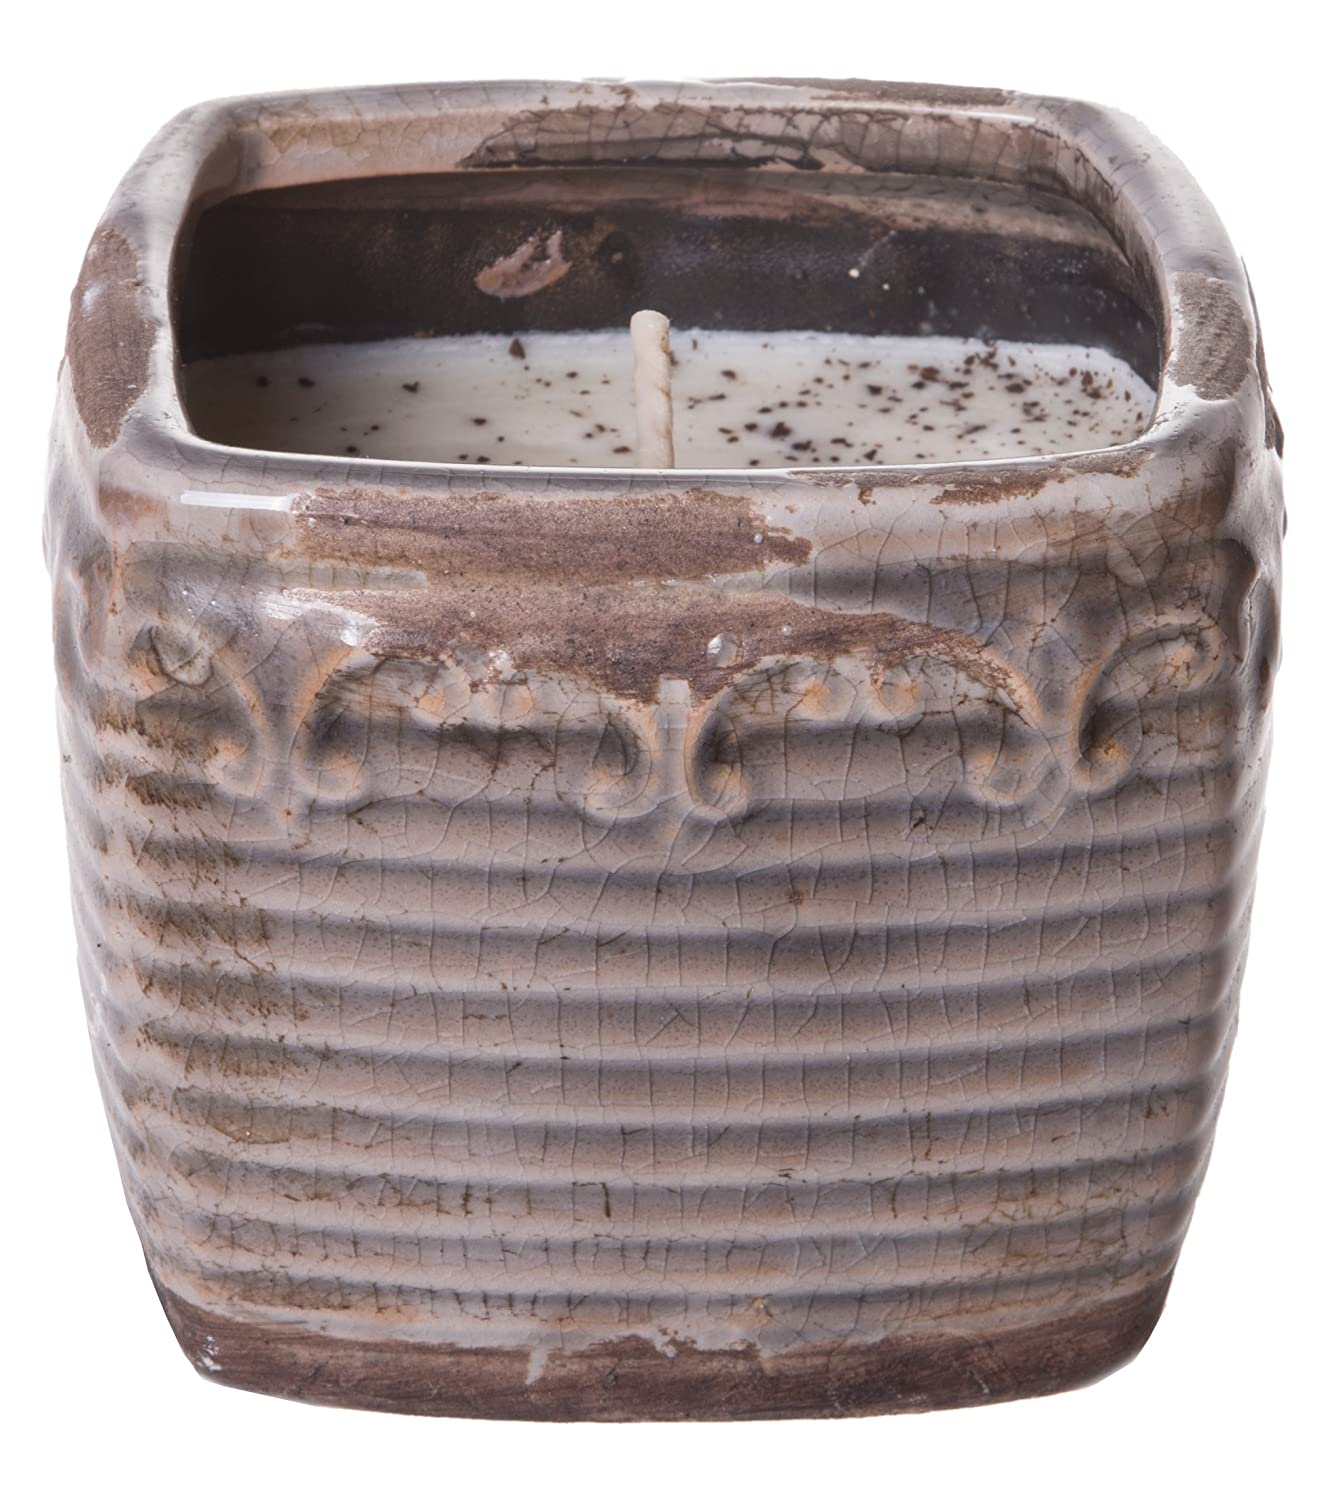 Swan Creek 10 Ounce Lavender & Lemongrass American Soybean Wax Candle in Vintage Square Pottery 80785